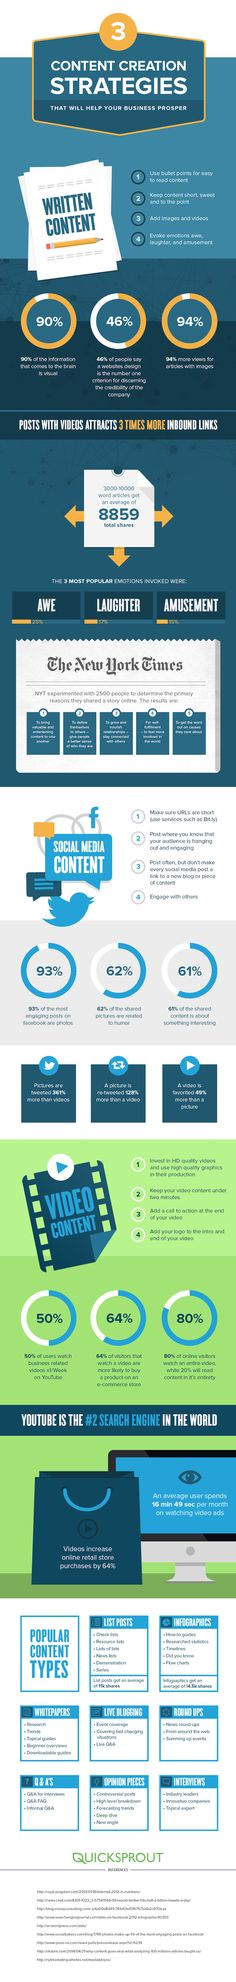 #Marketing, 3 Powerful Content Creation Strategies for Social Media Marketersr - #infographic #contentmarketing #socialmedia